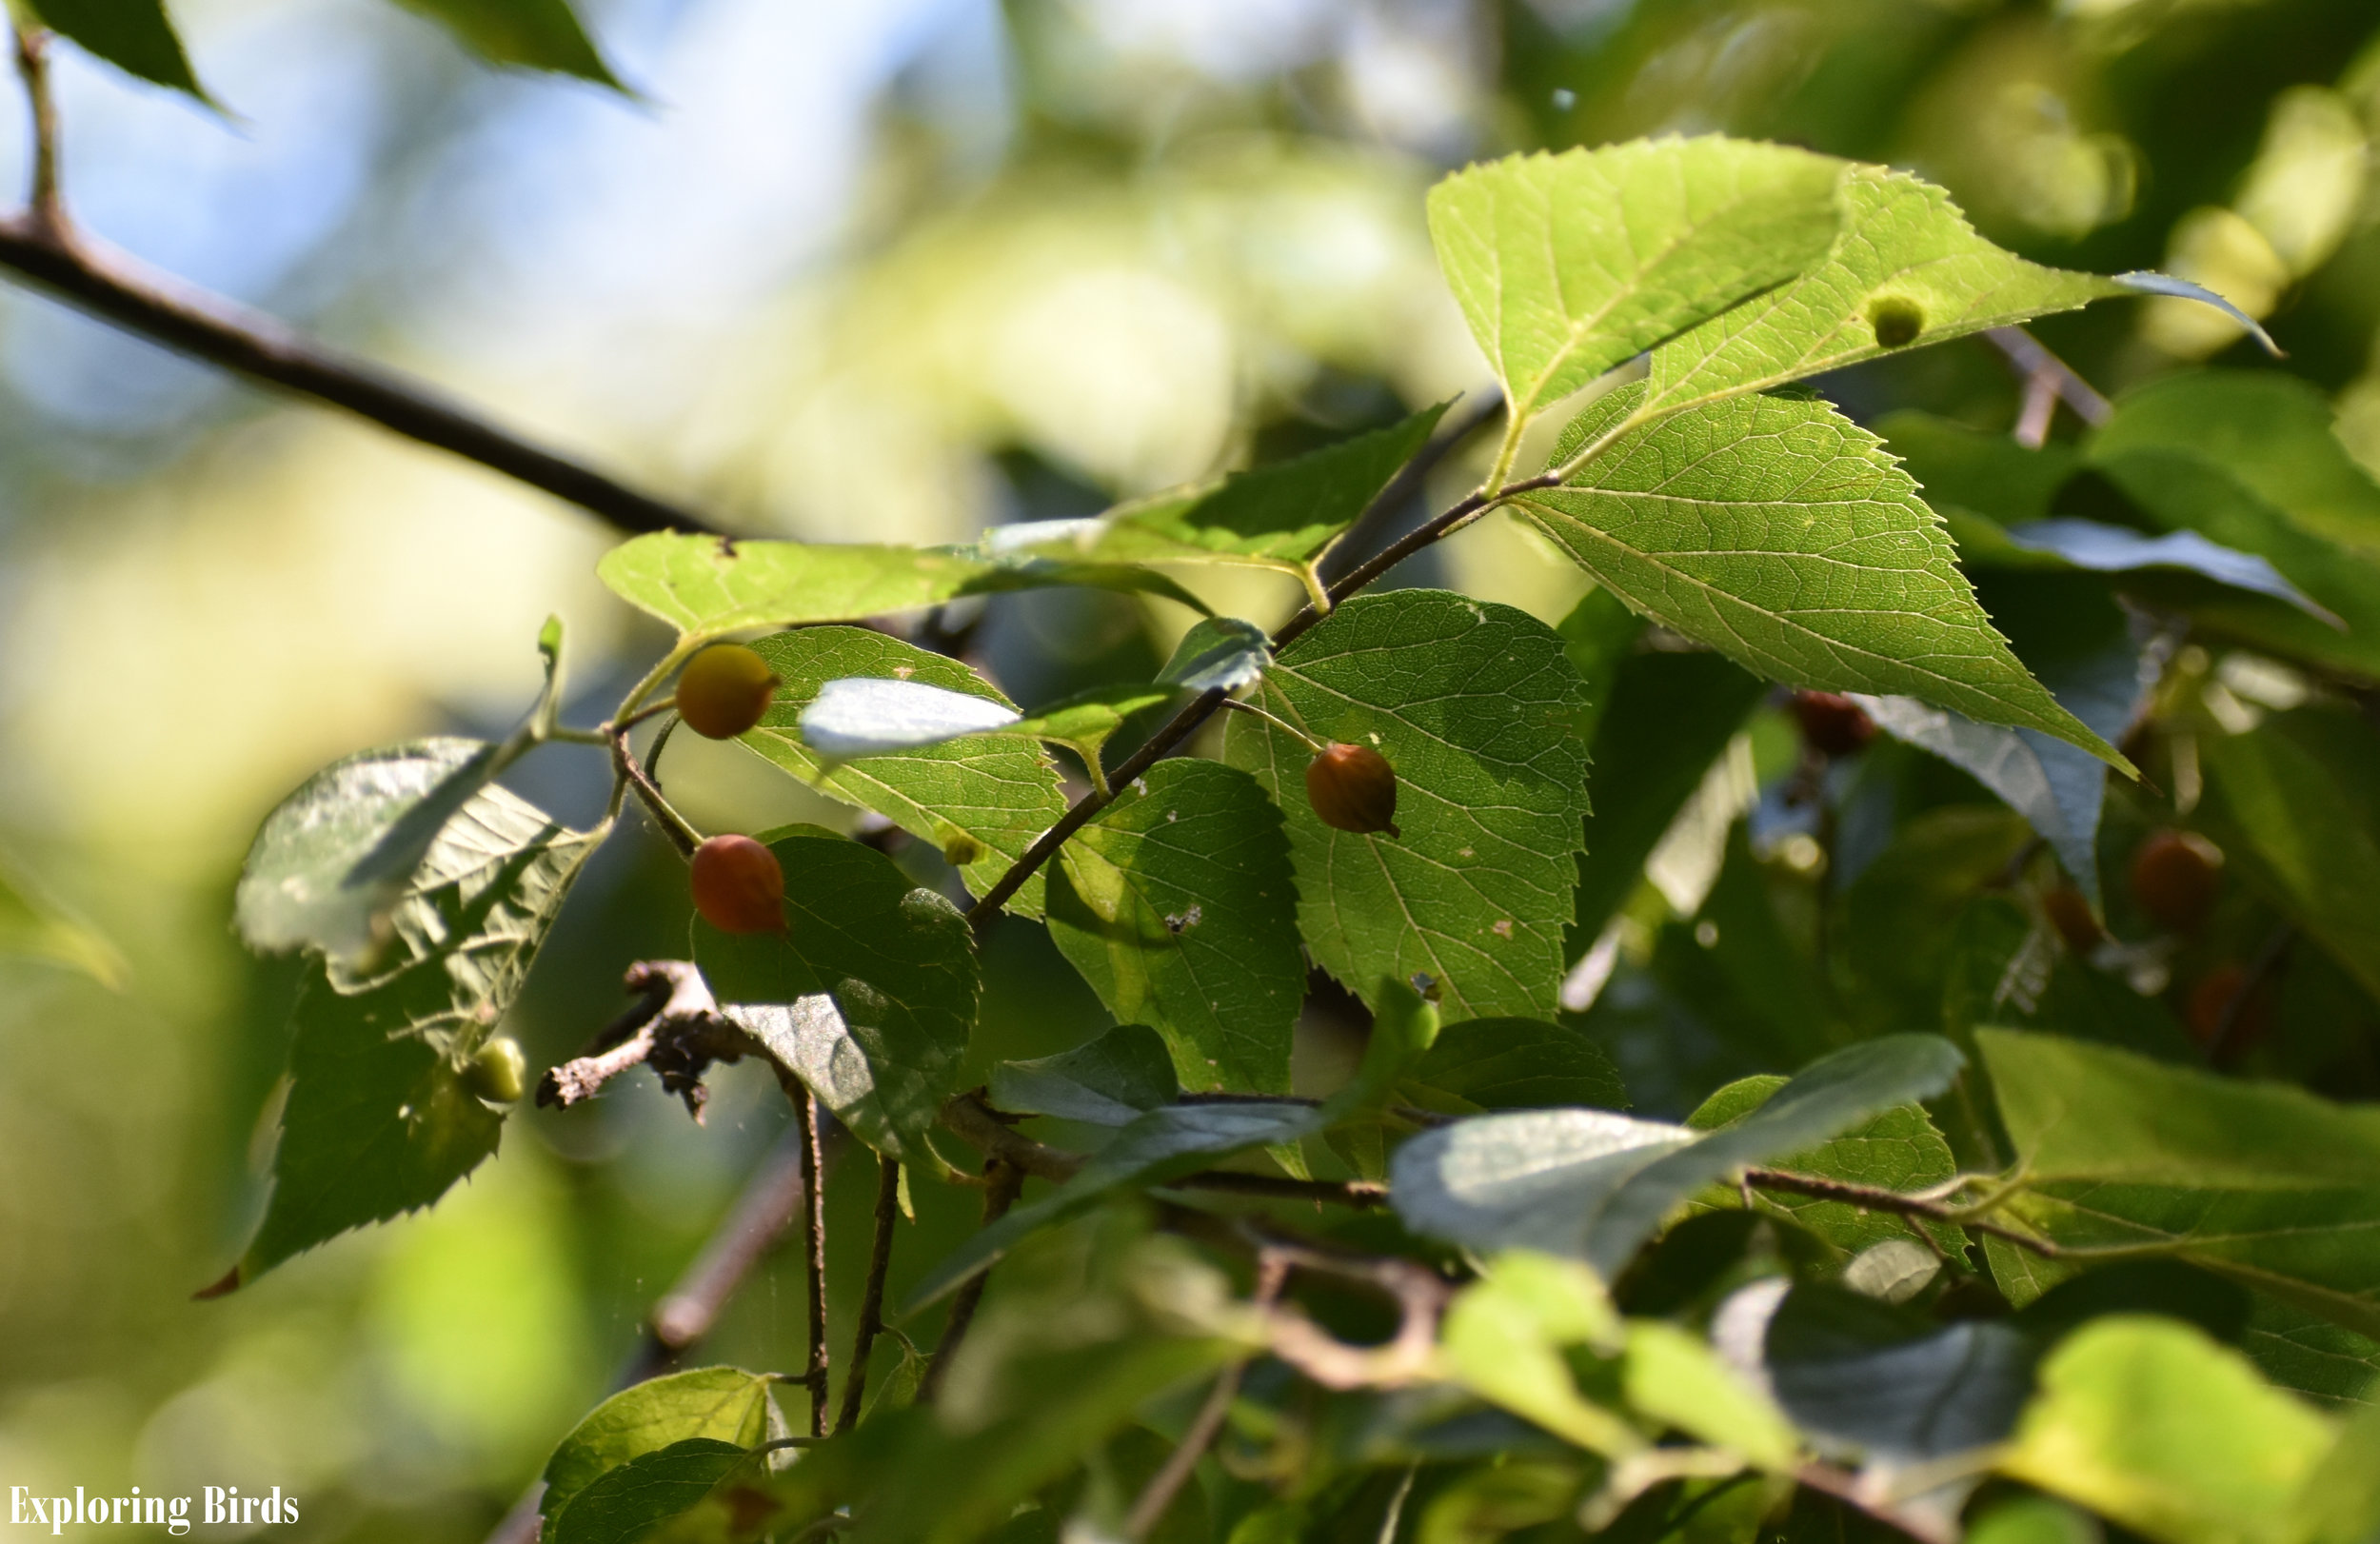 Northern Hackberry is a tree that attracts birds